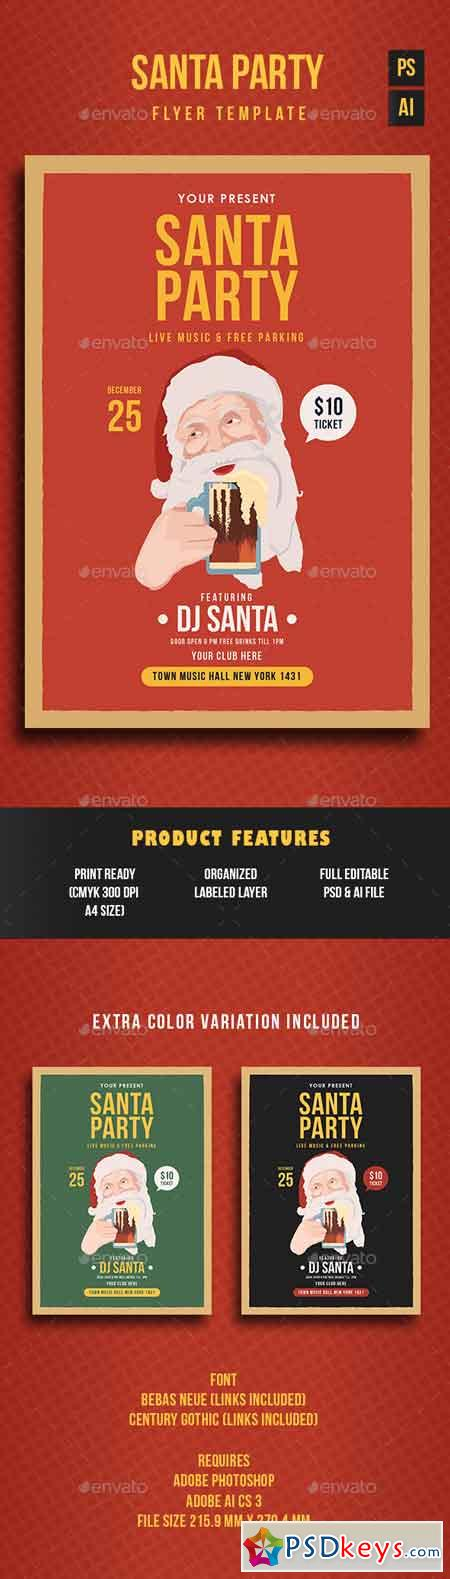 Santa Party Flyer Template 13395280